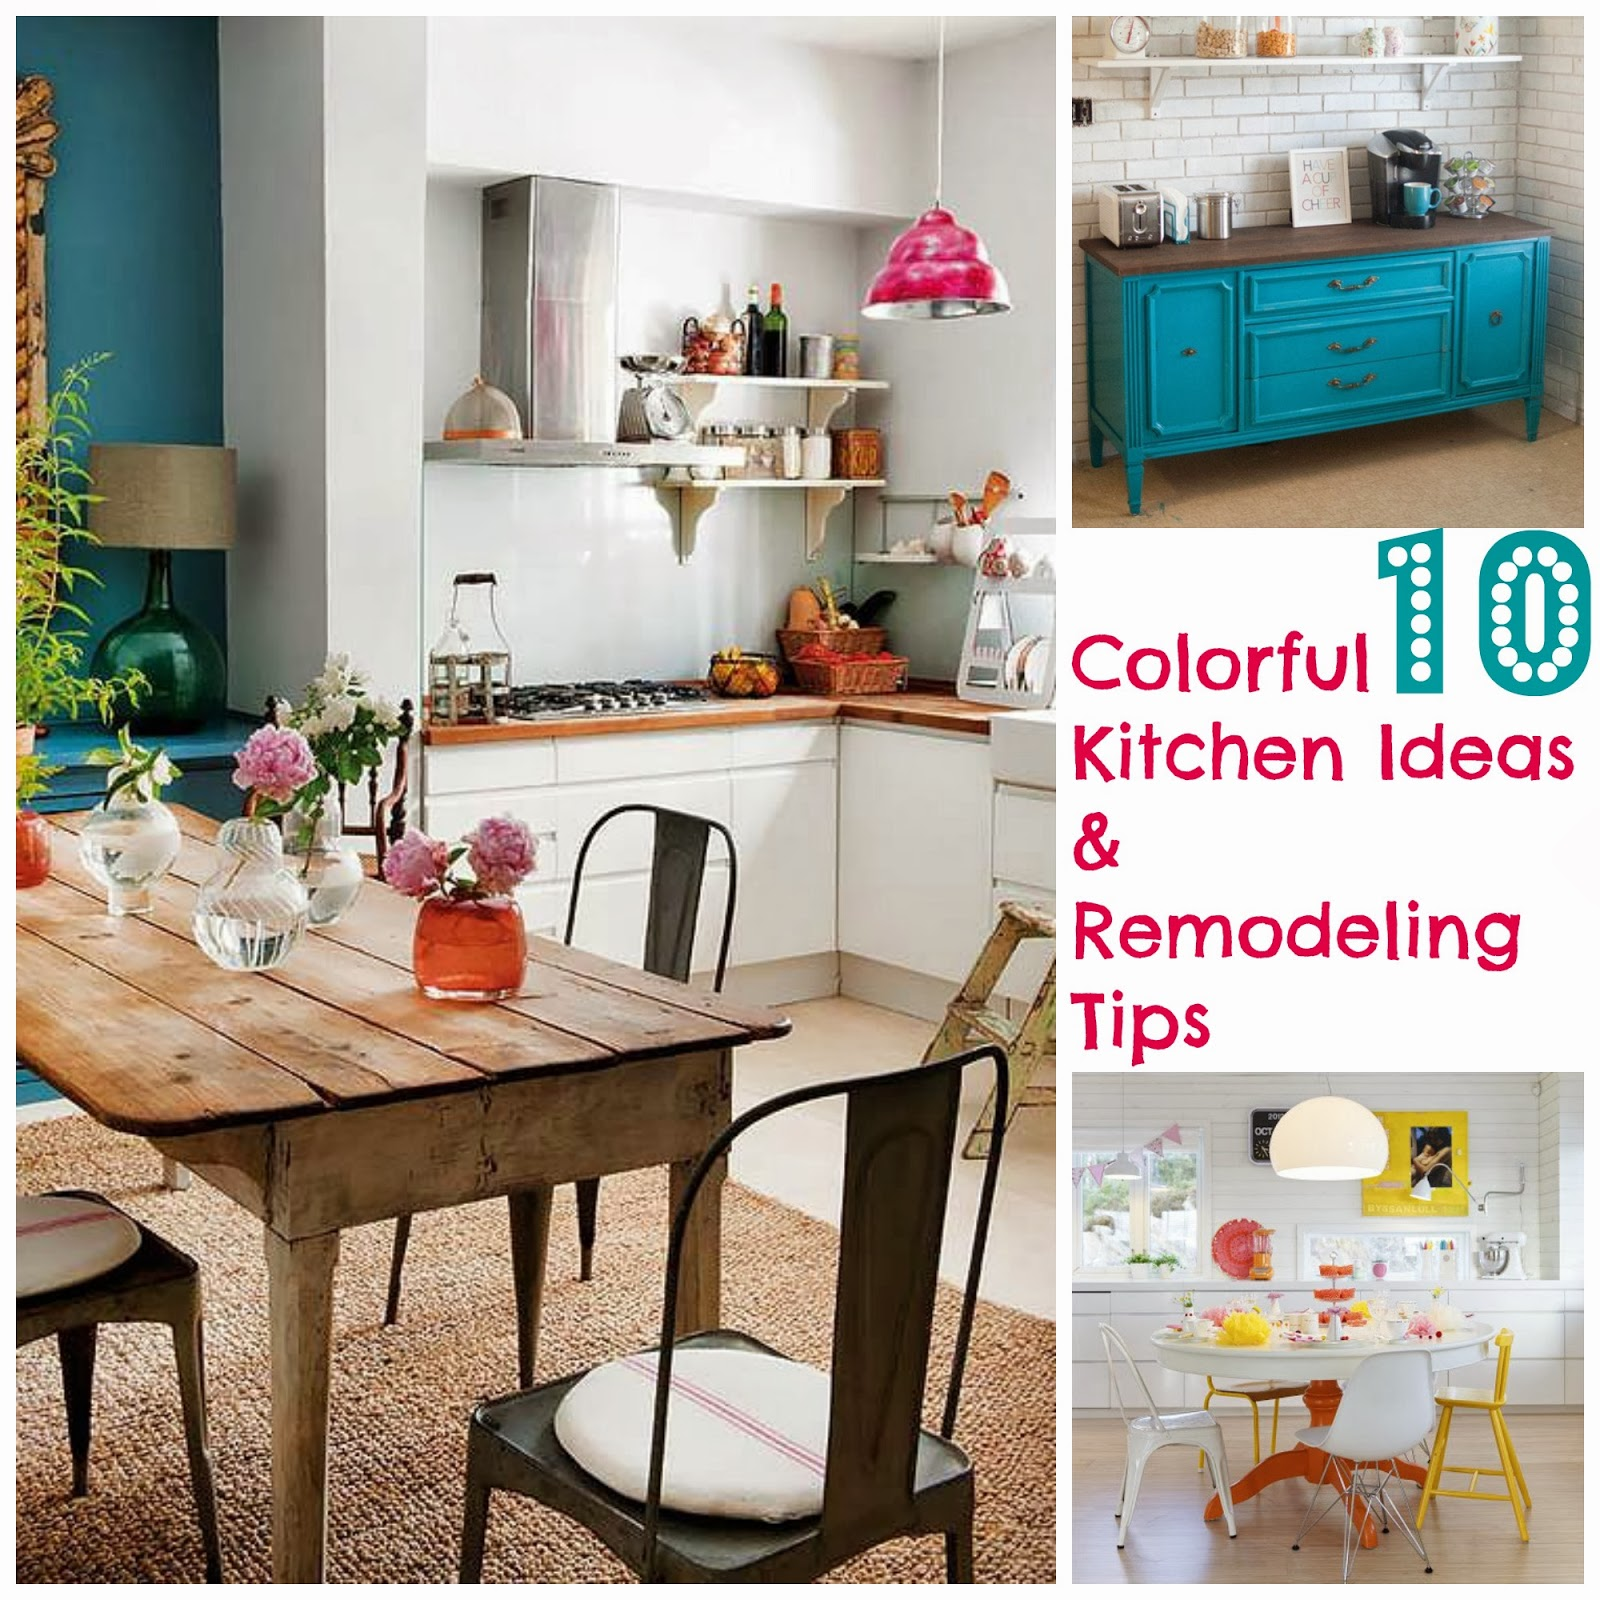 10 Awesome Kitchen Makeovers: The Sweetest Memory: 10 Colorful Kitchen Ideas